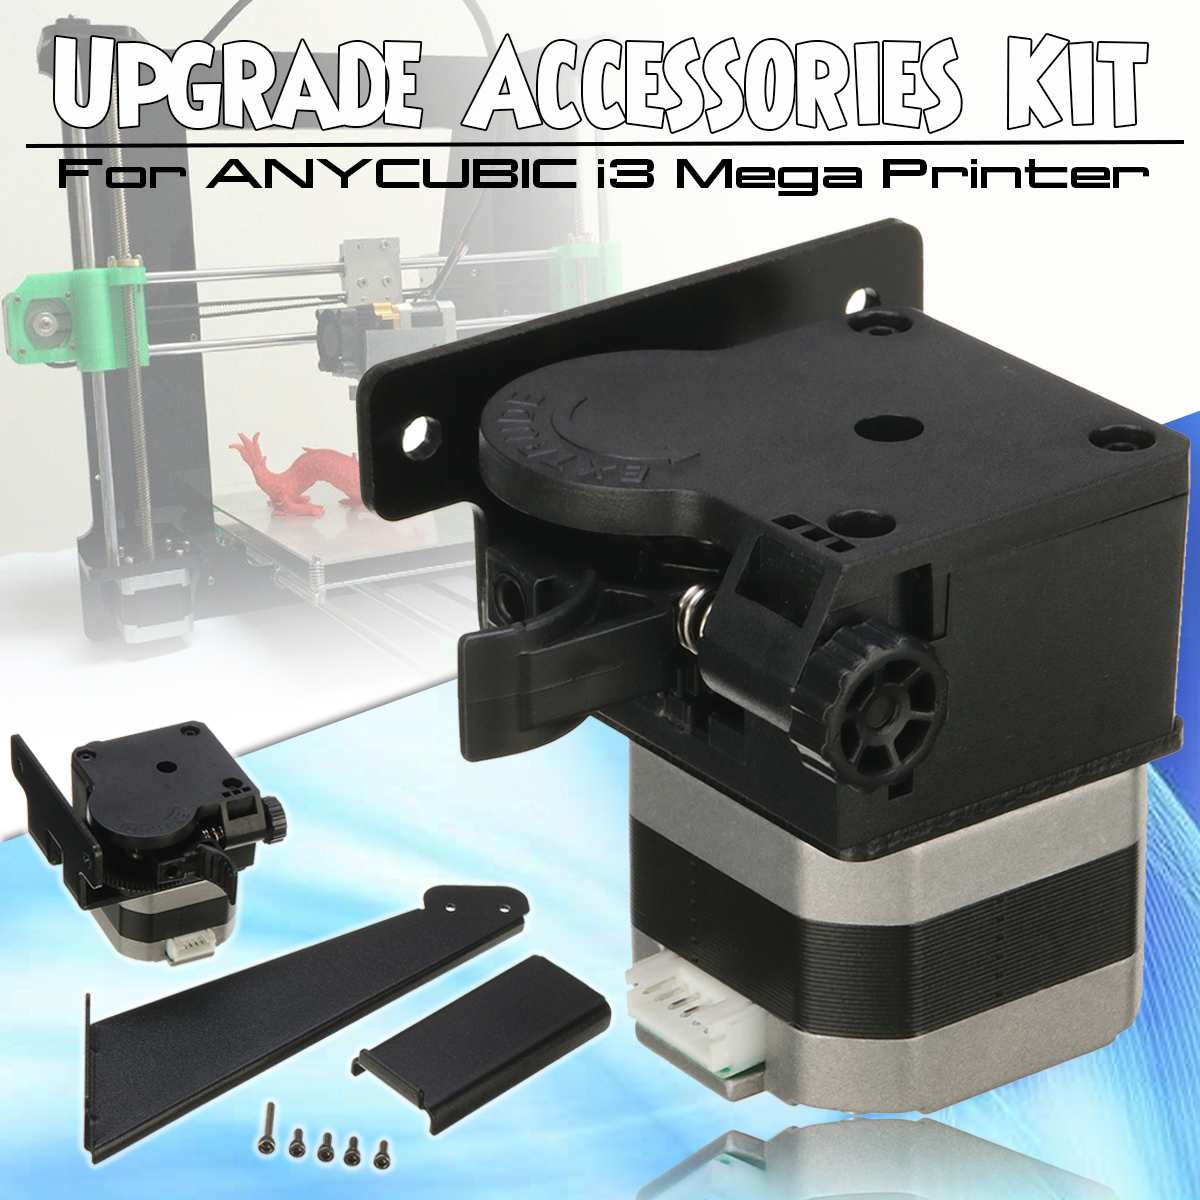 NEW 3D Printer Upgrade Accessories Kit With Extruder Material Holder Full Metal Mechanical Kit For ANYCUBIC I3 Mega image